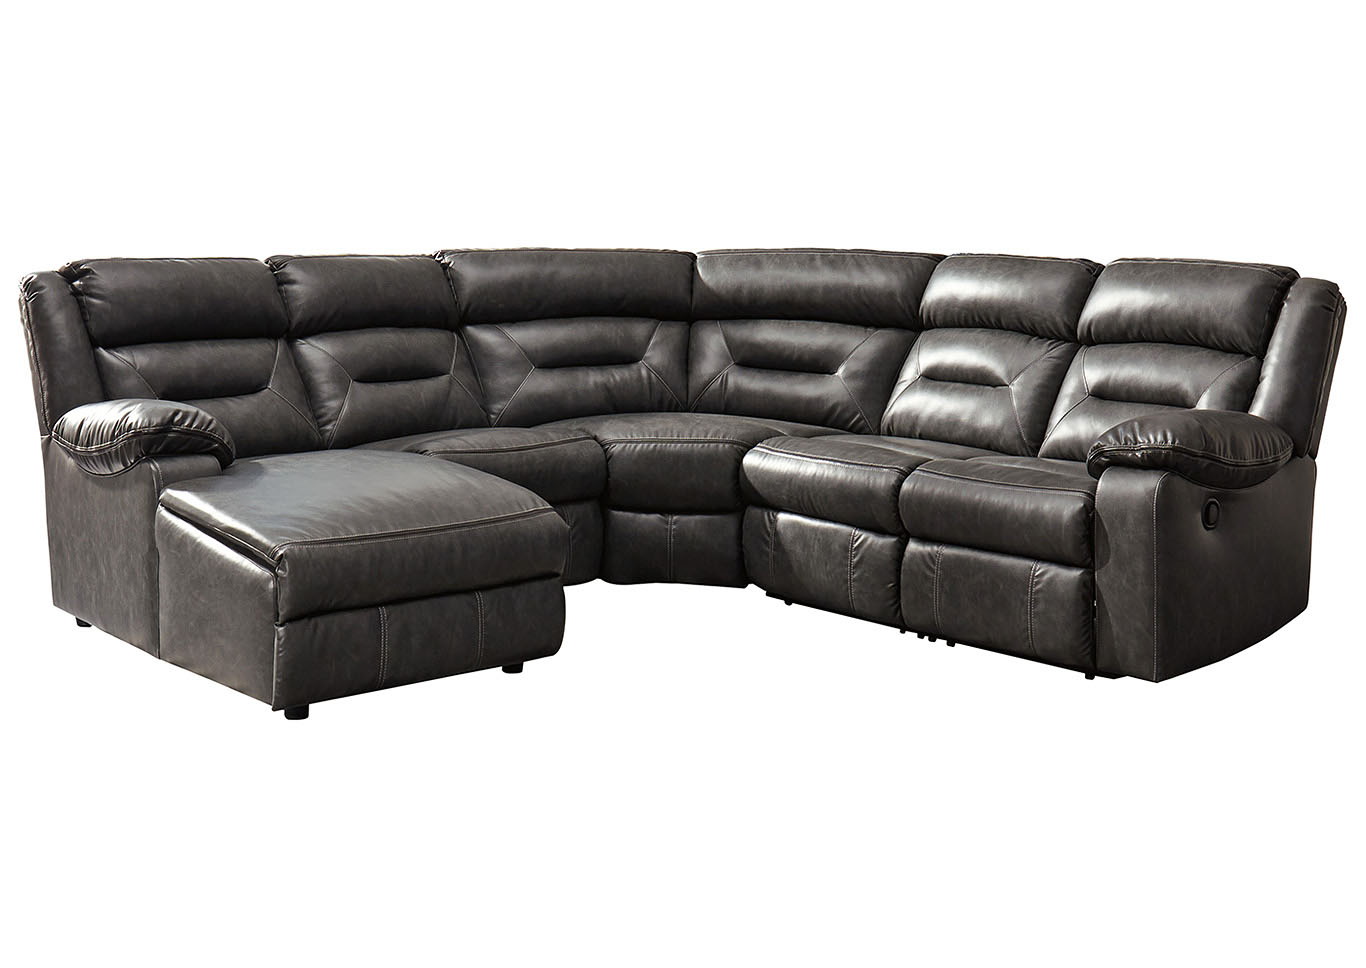 Coahoma Dark Gray LAF Chaise Sectional w/Power Recliner,Signature Design By Ashley